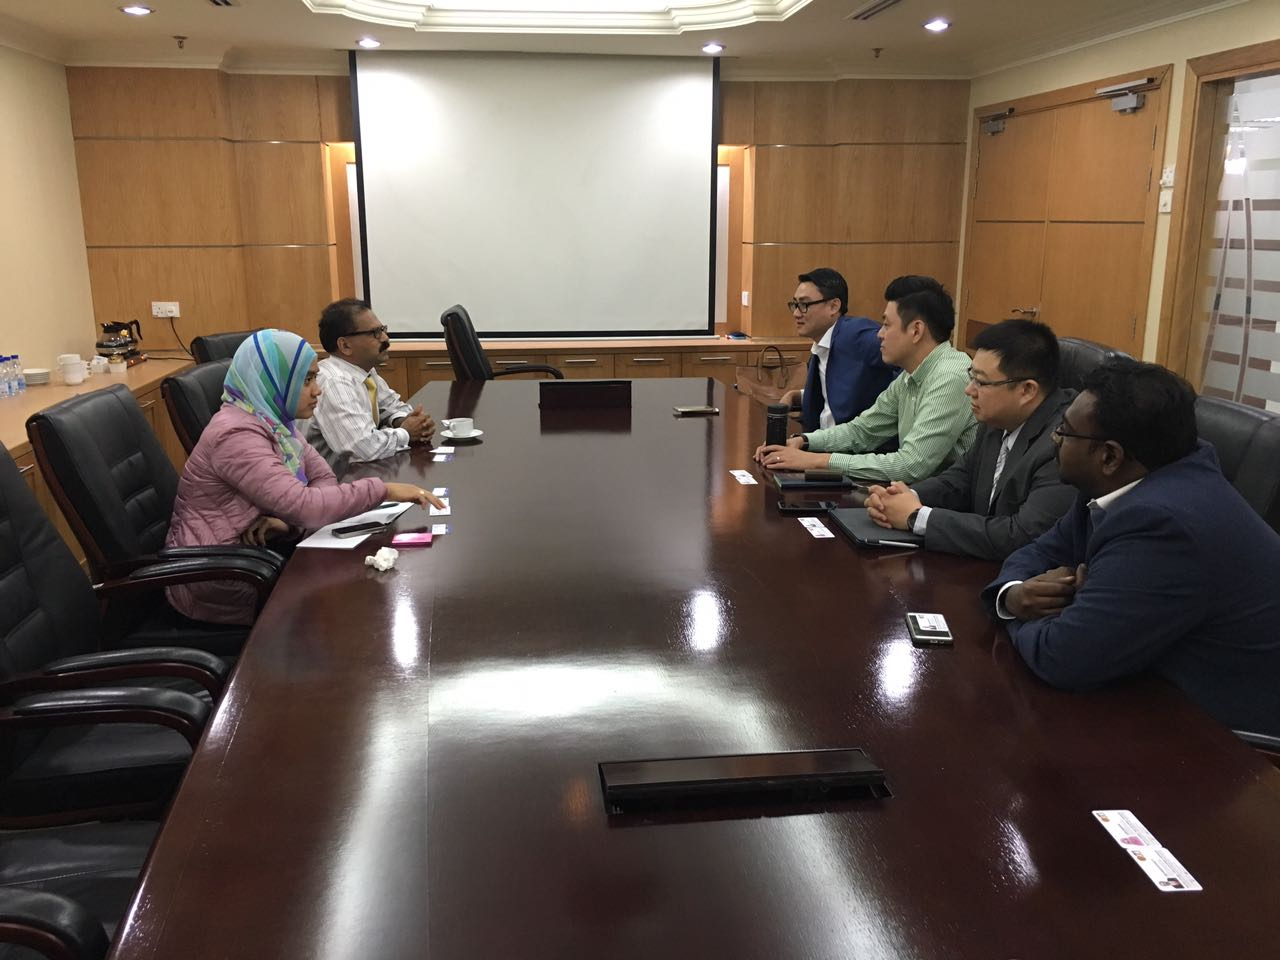 Meeting with MDEC Key Management in Cyberjaya | 30 AUG 2016